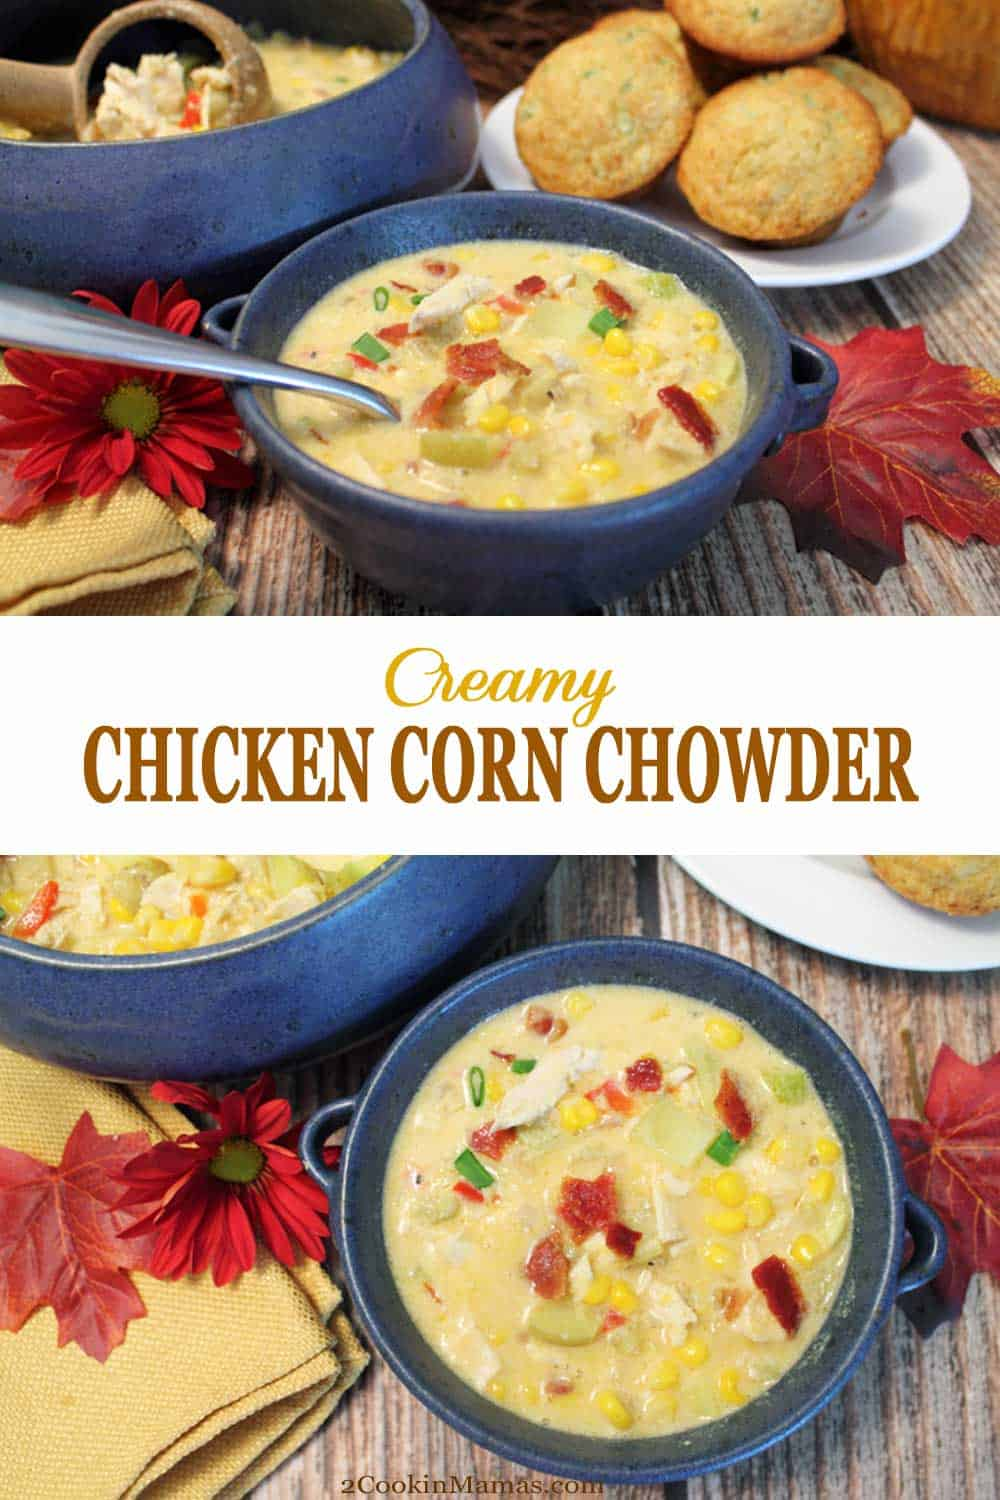 Chicken Corn Chowder | 2 Cookin Mamas Warm up with this rich & creamy Chicken Corn Chowder. A quick & healthy dinner, full of protein & vegetables, that can be on the table in 30 minutes. #cornchowder #soup #chicken #lowfat #recipe #easyrecipe #comfortfood #chowder